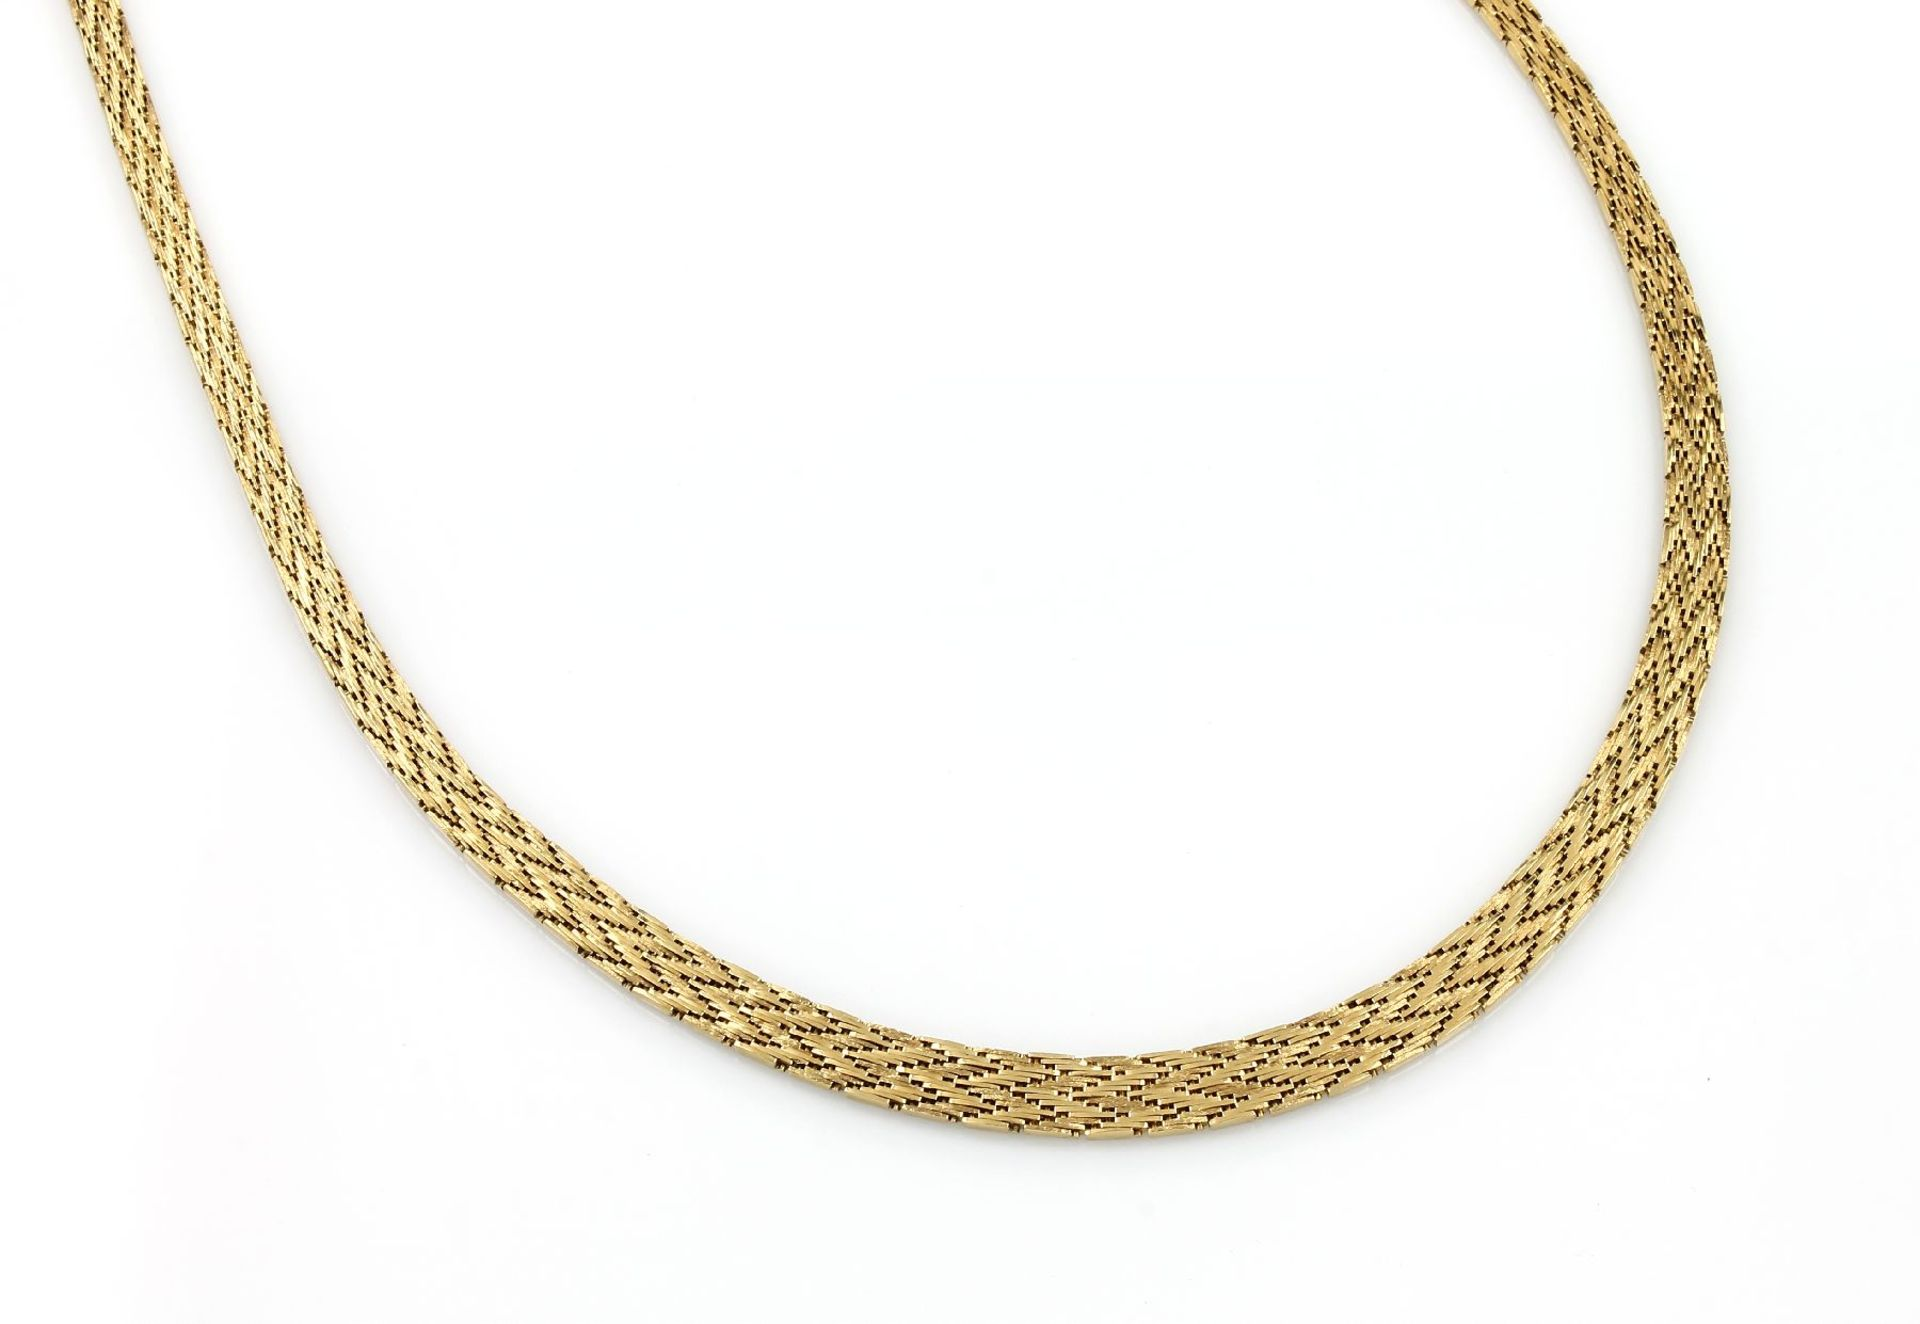 Los 31516 - 18 kt gold necklace , YG 750/000, herringbone, approx. 53.3 g, l. approx. 42.5 cm, case lock with